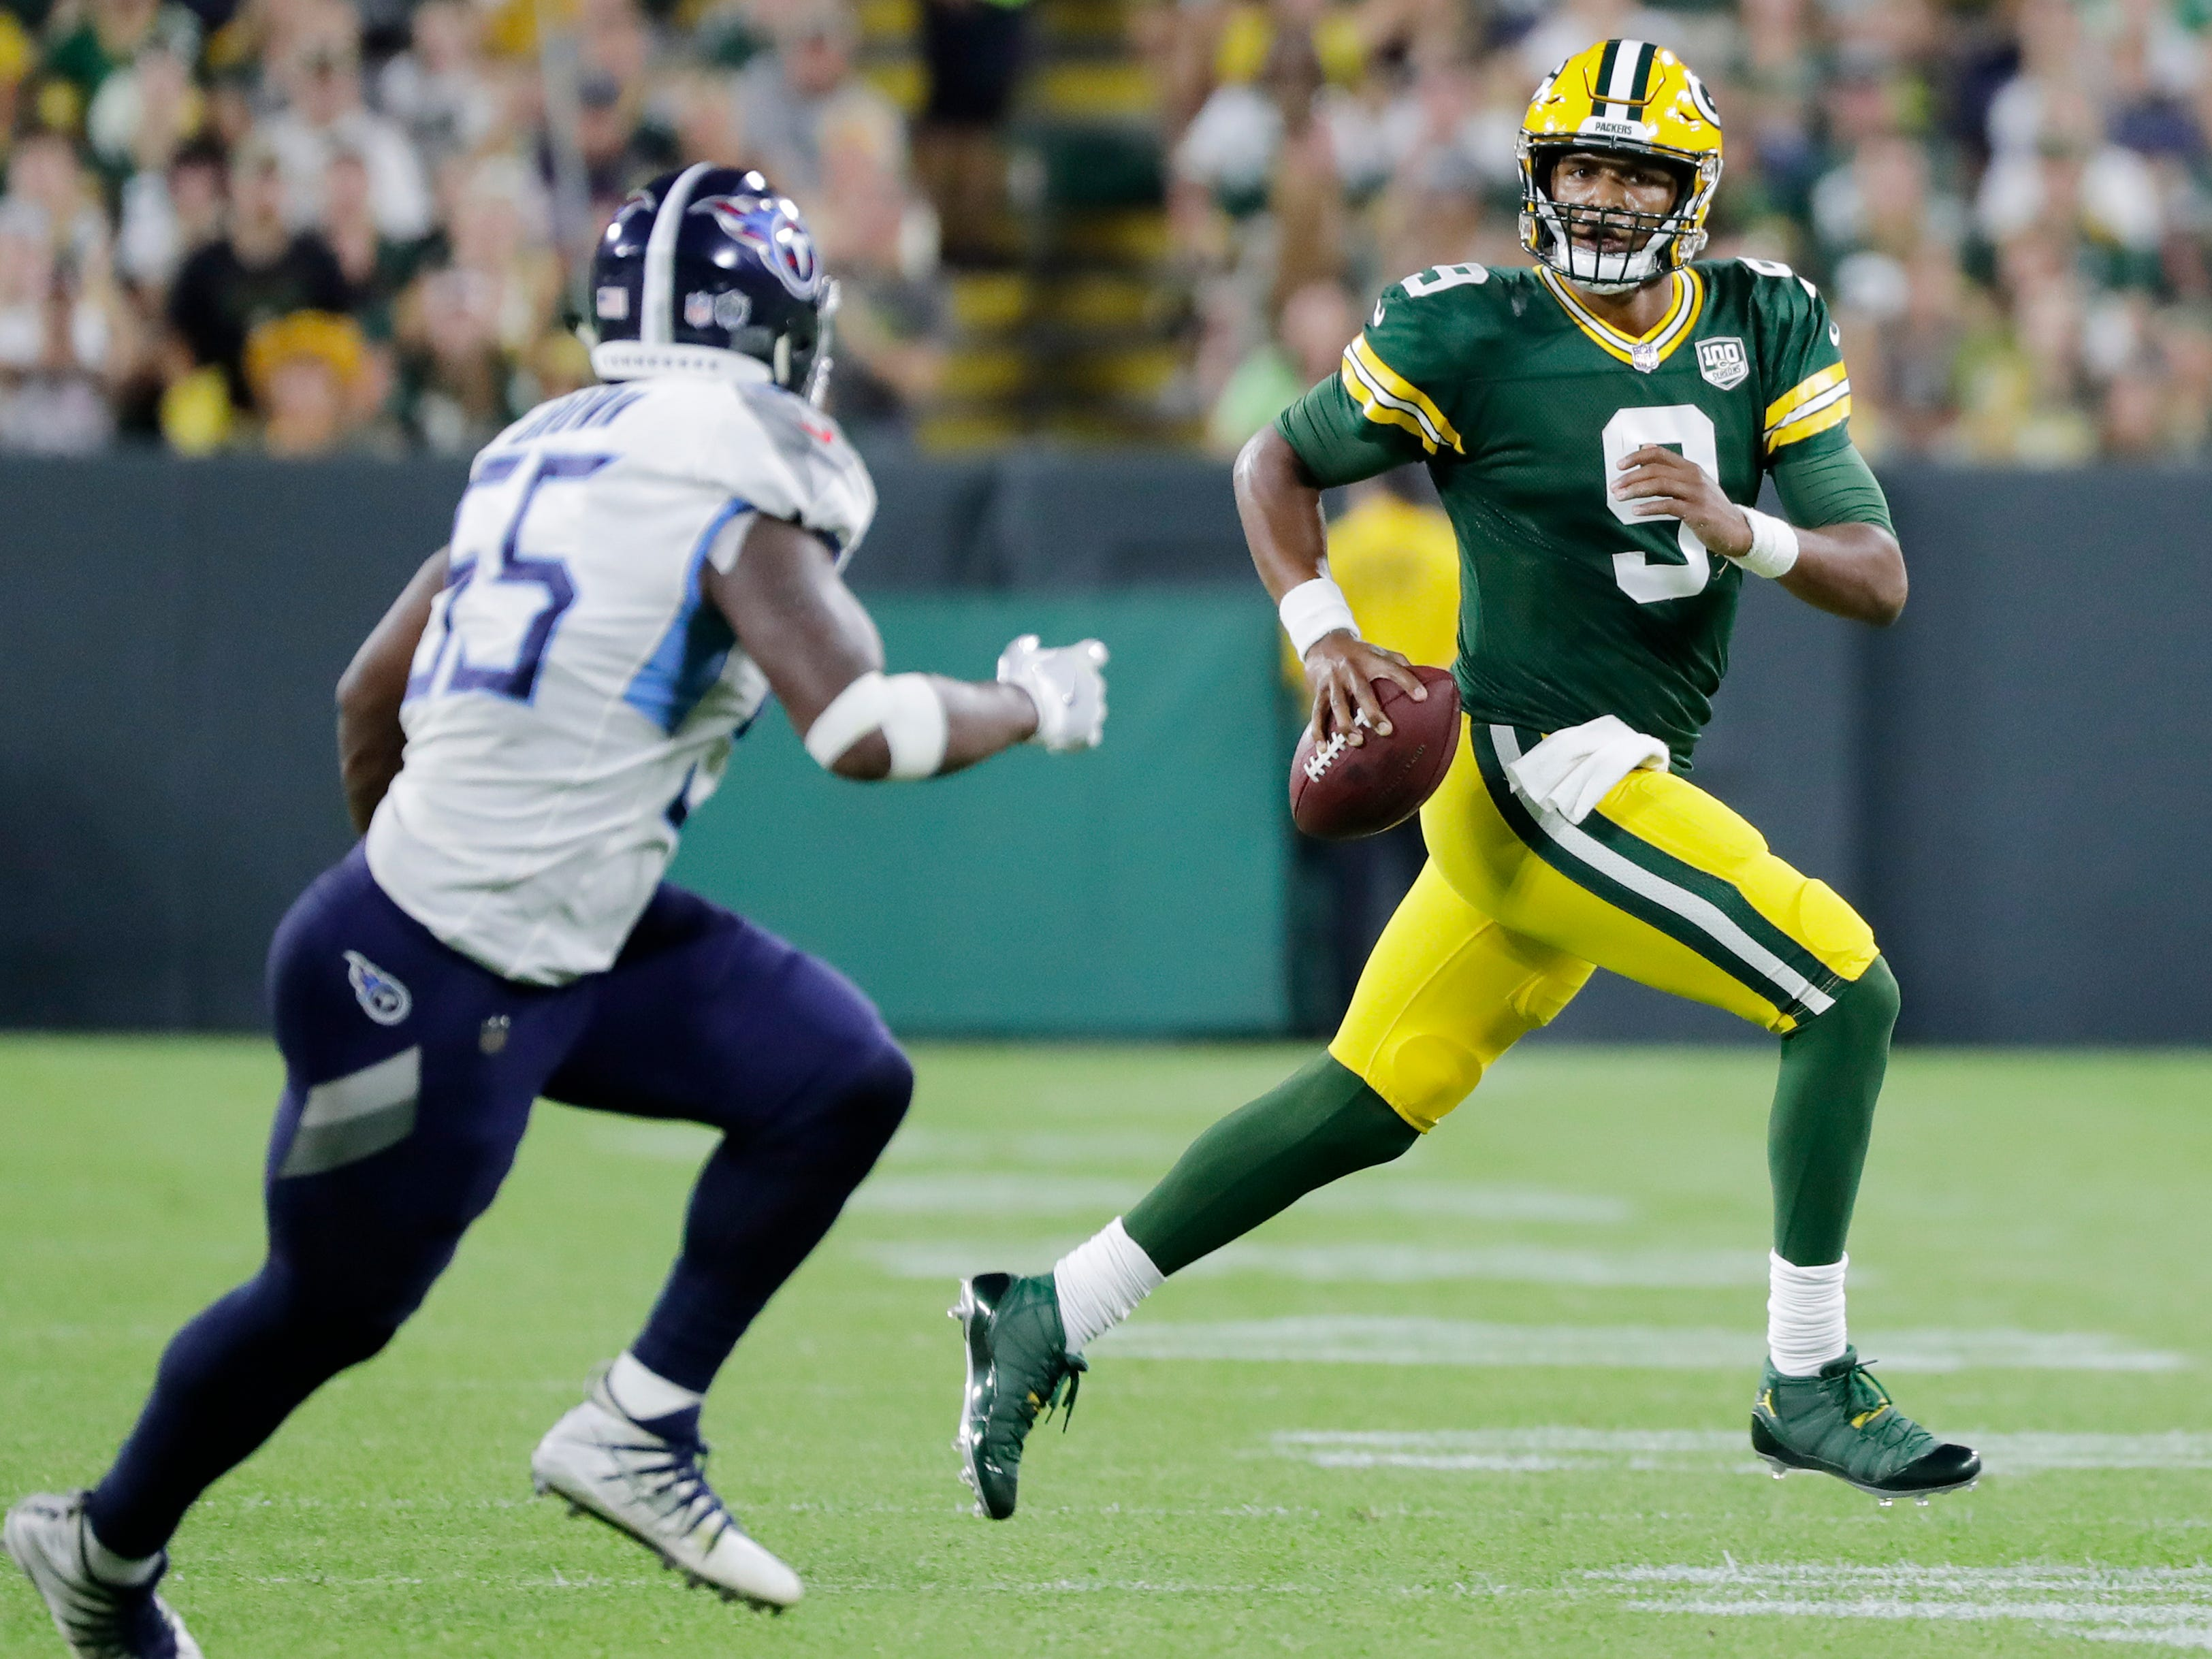 Green Bay Packers quarterback DeShone Kizer (9) scrambles against the Tennessee Titans in the second quarter of a NFL preseason game at Lambeau Field on Thursday, August 9, 2018 in Green Bay, Wis.